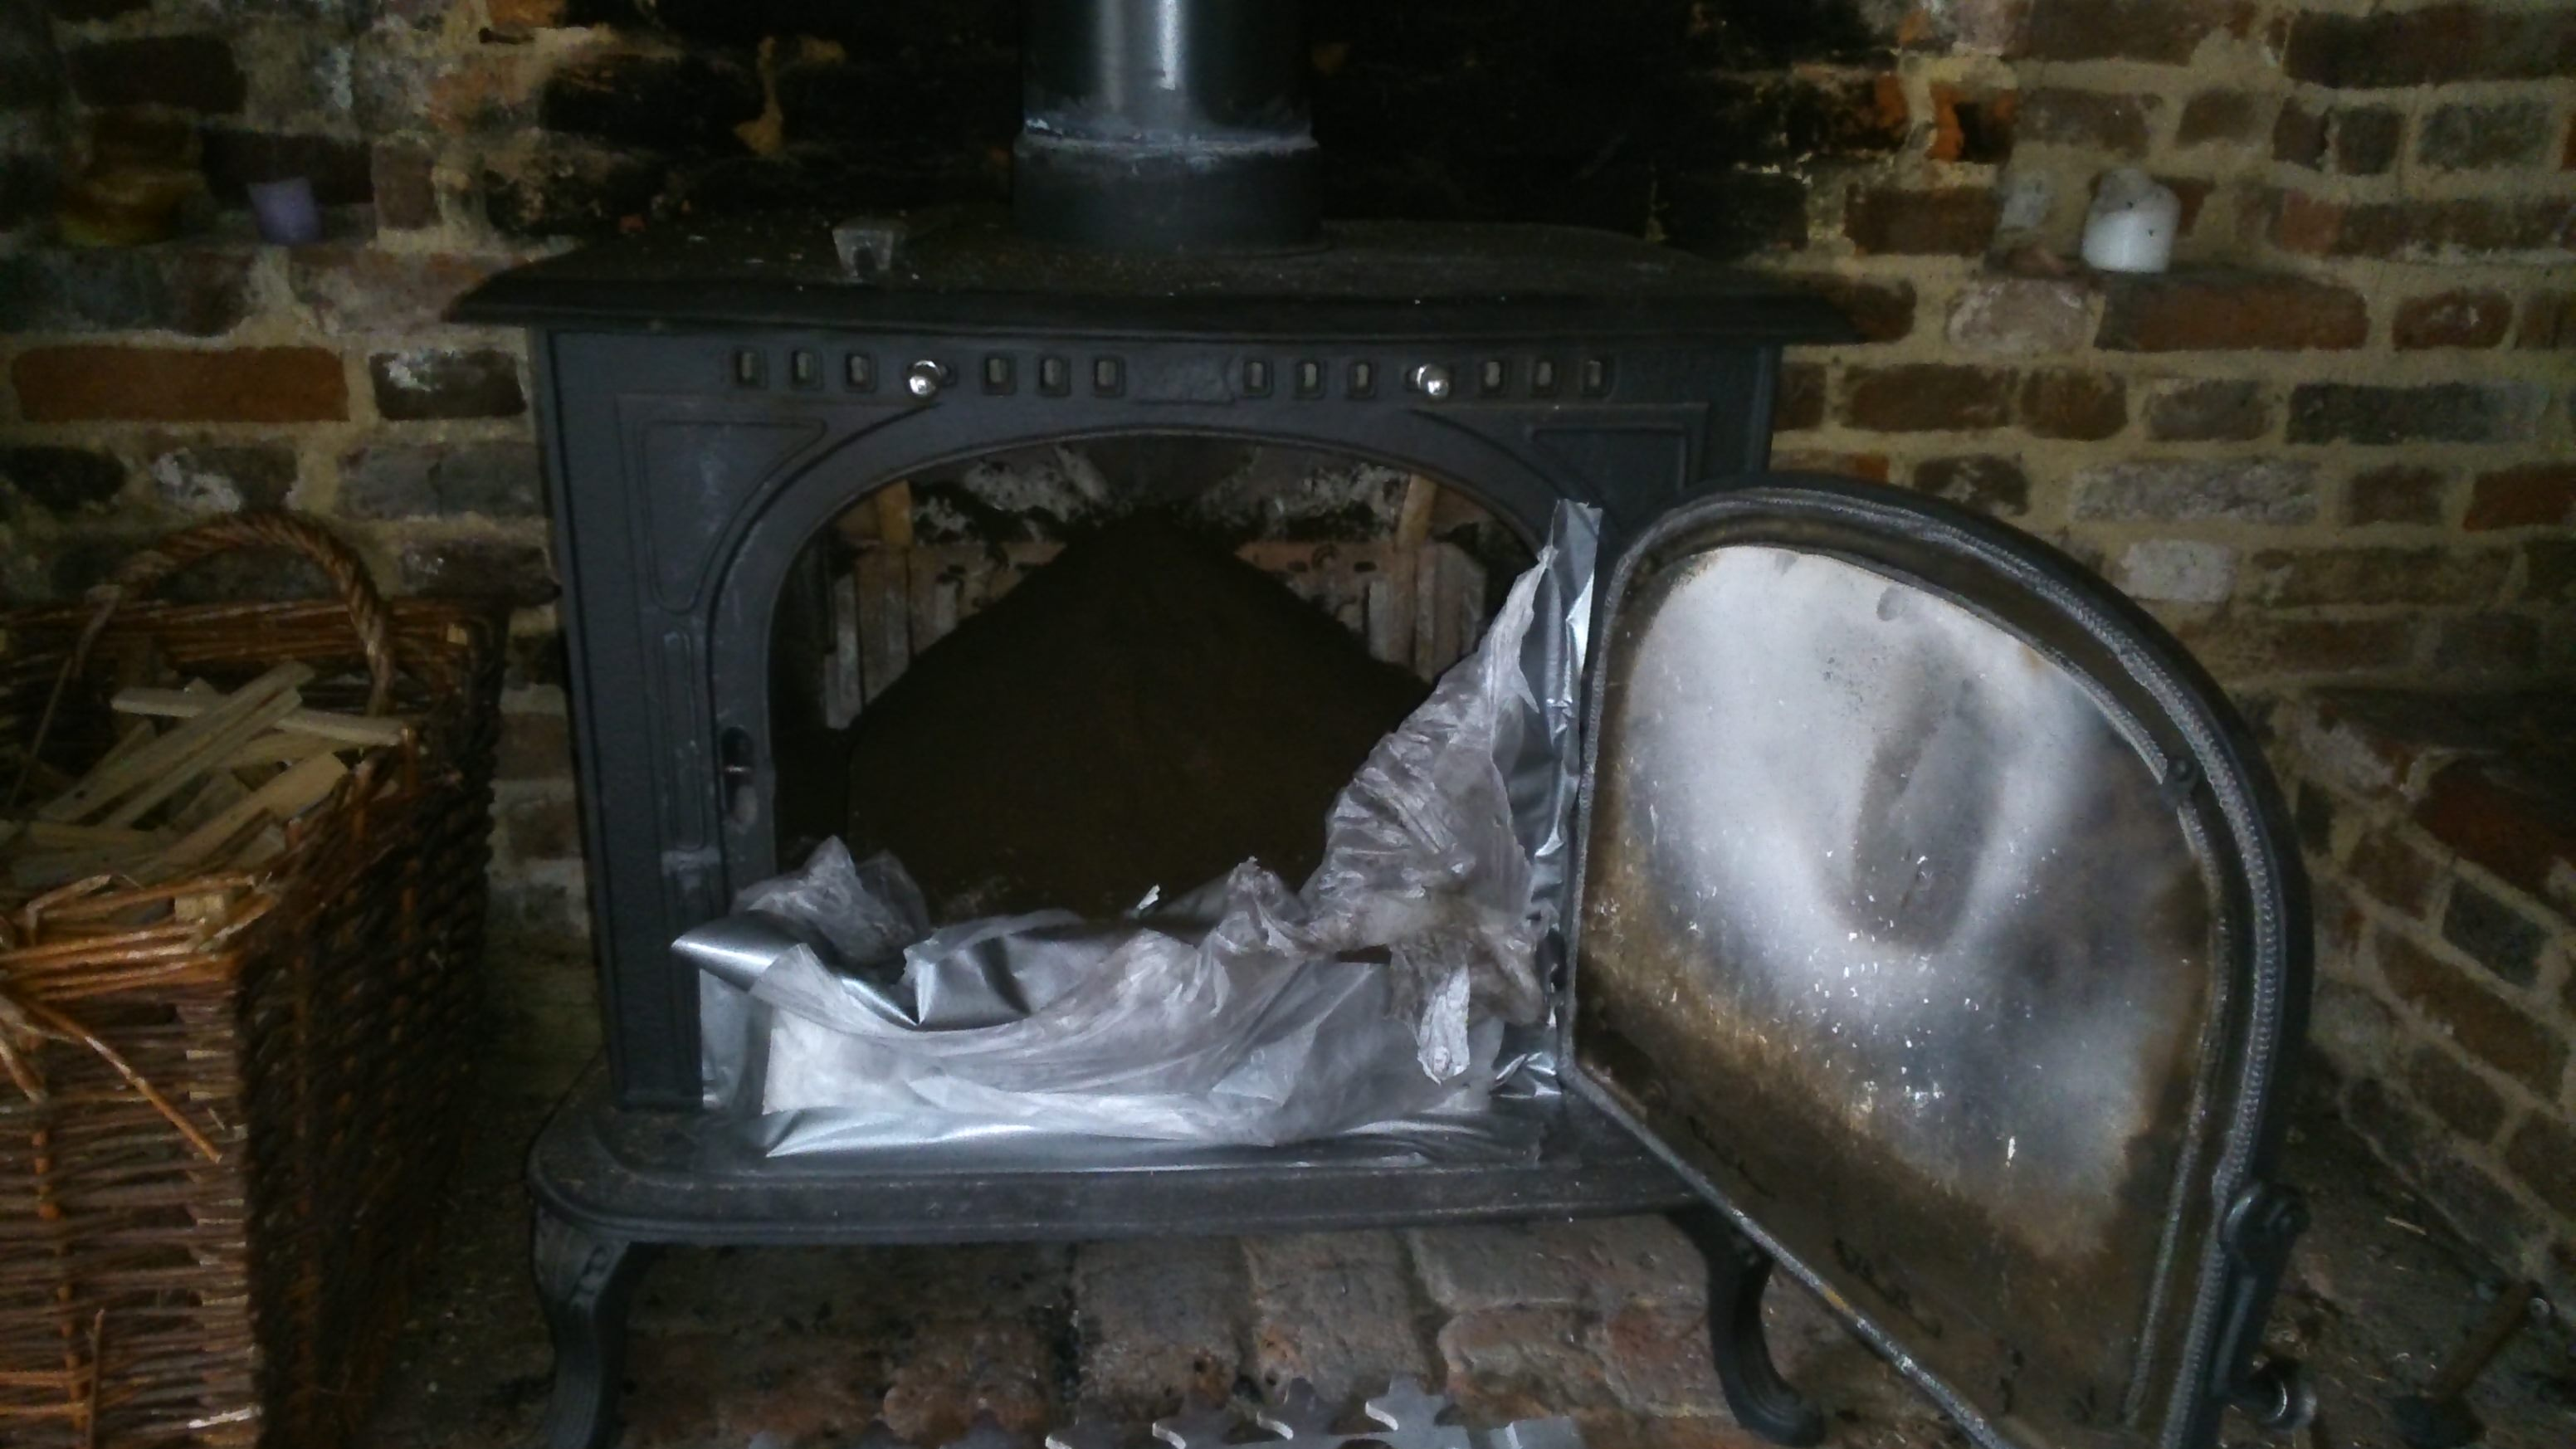 stove-full-of-soot-after-sweep